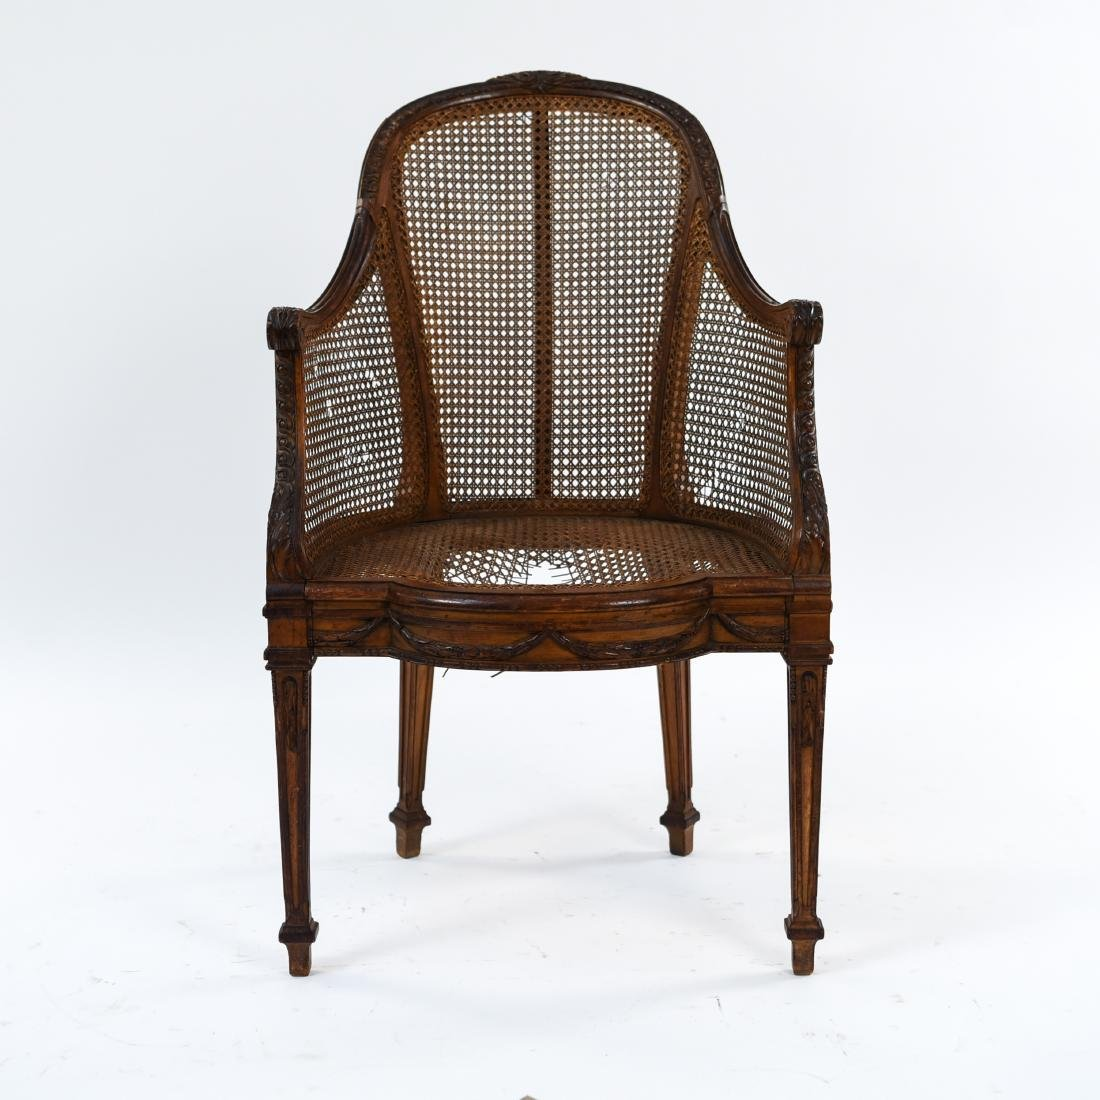 ANTIQUE FRENCH CANED CHAIR - 2